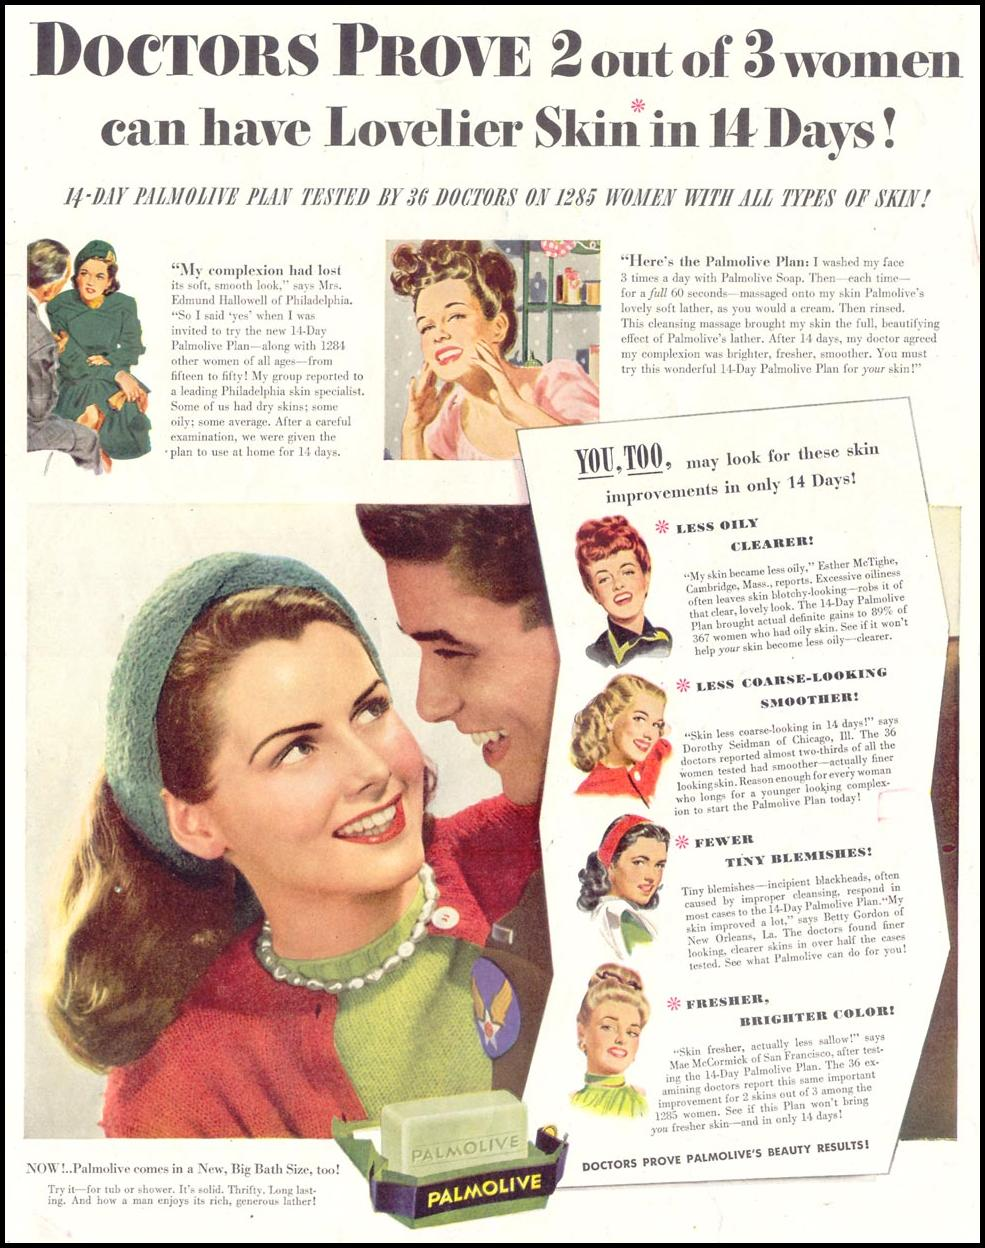 PALMOLIVE SOAP SATURDAY EVENING POST 10/06/1945 p. 8